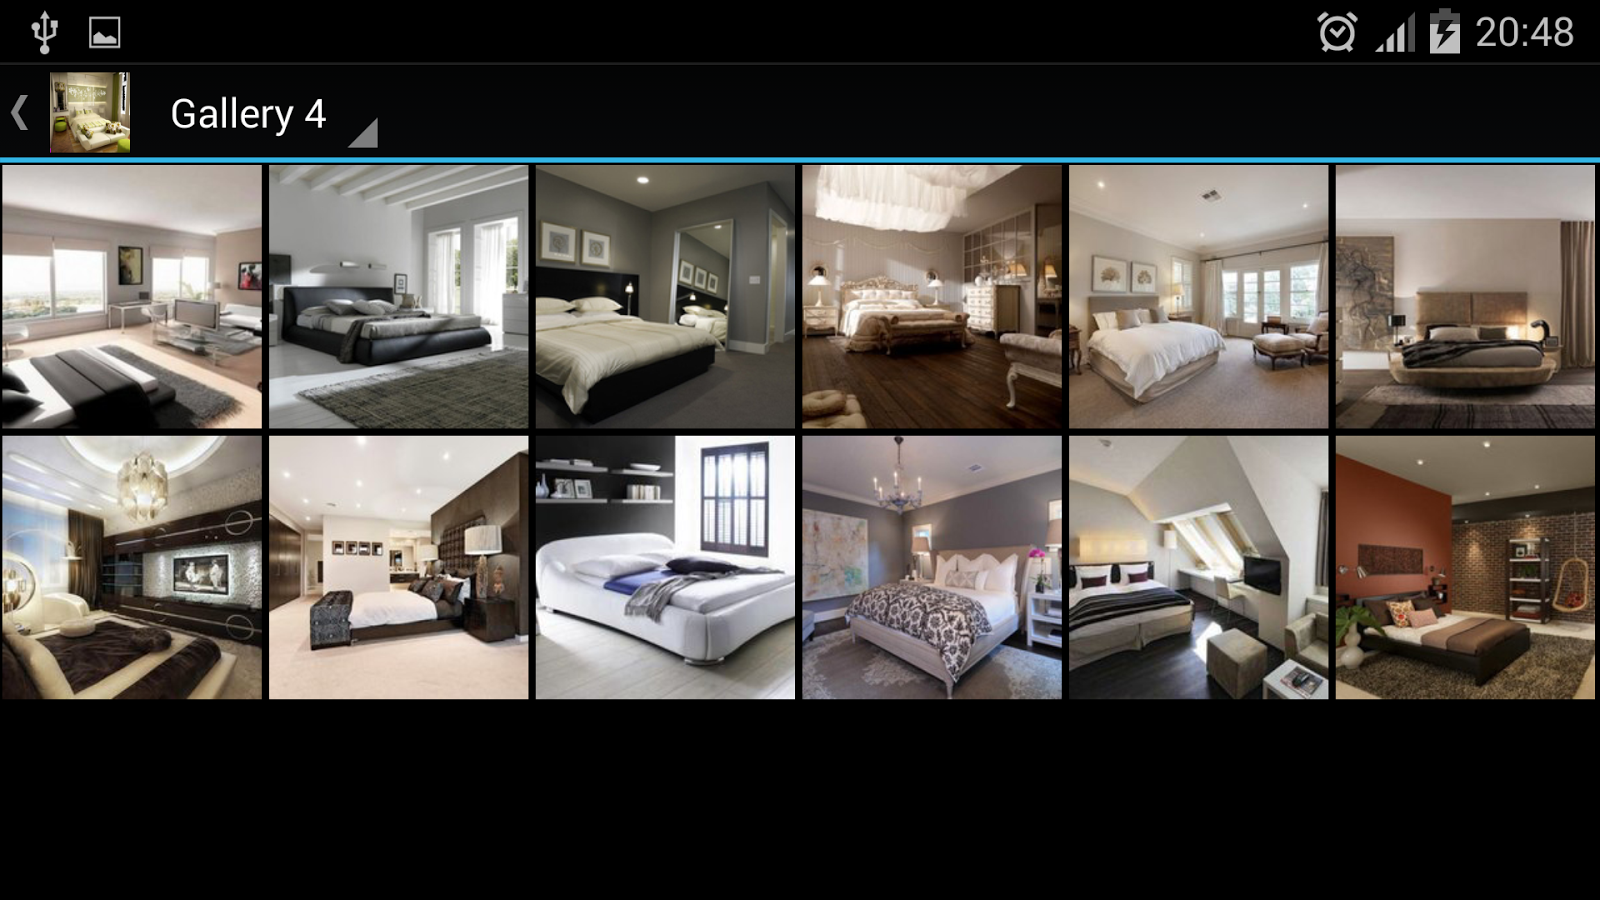 Bedroom Decorating Android Apps on Google Play